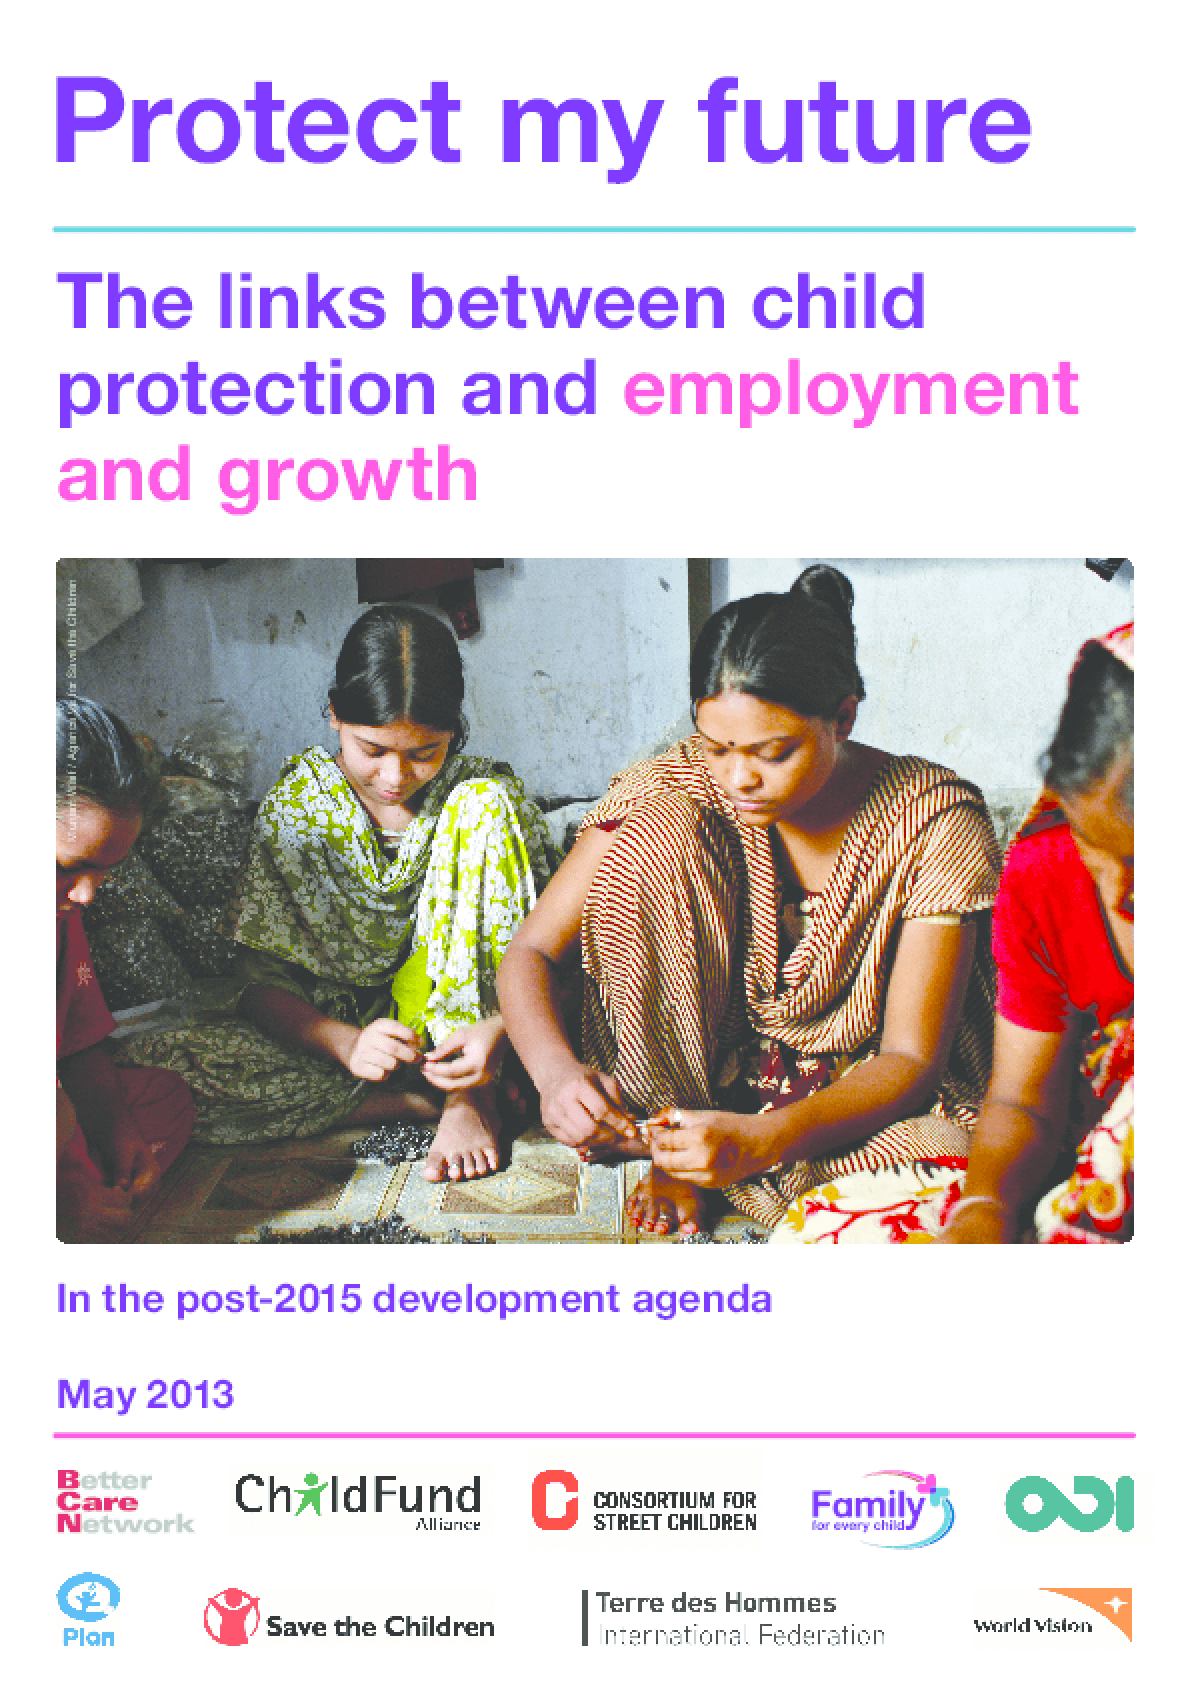 Protect My Future: The Links Between Child Protection and Employment and Growth in the Post-2015 Development Agenda